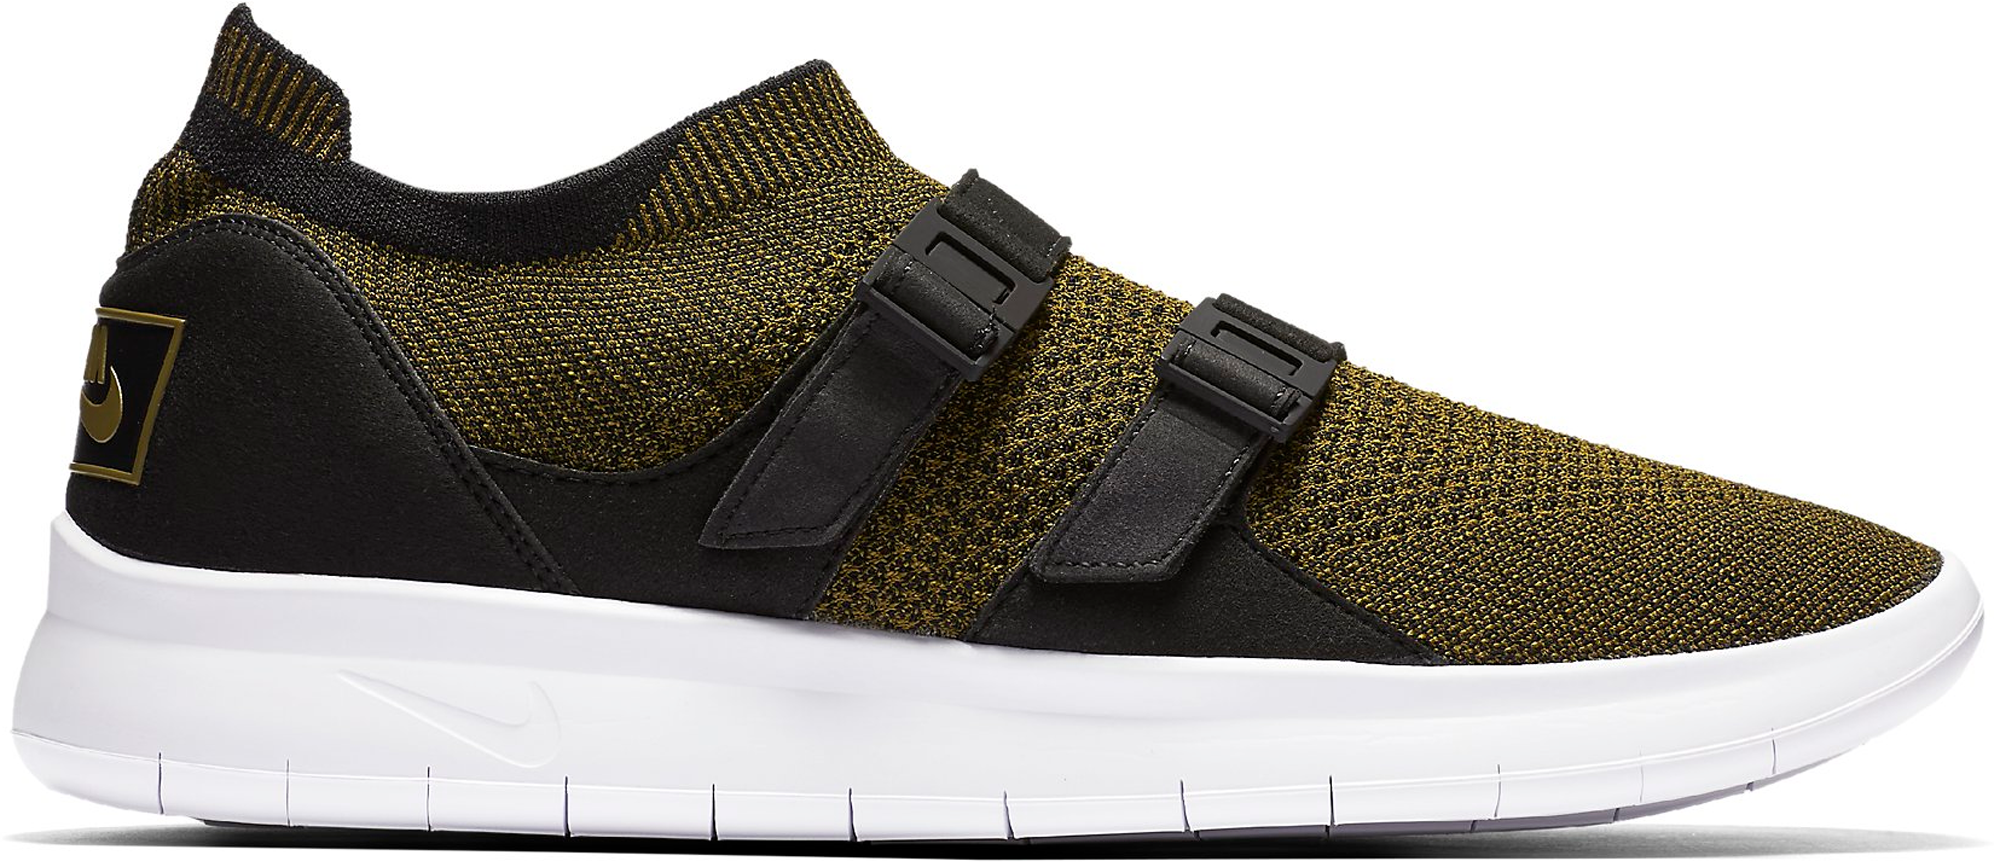 Air Sock Racer Ultra Flyknit Olive Flak